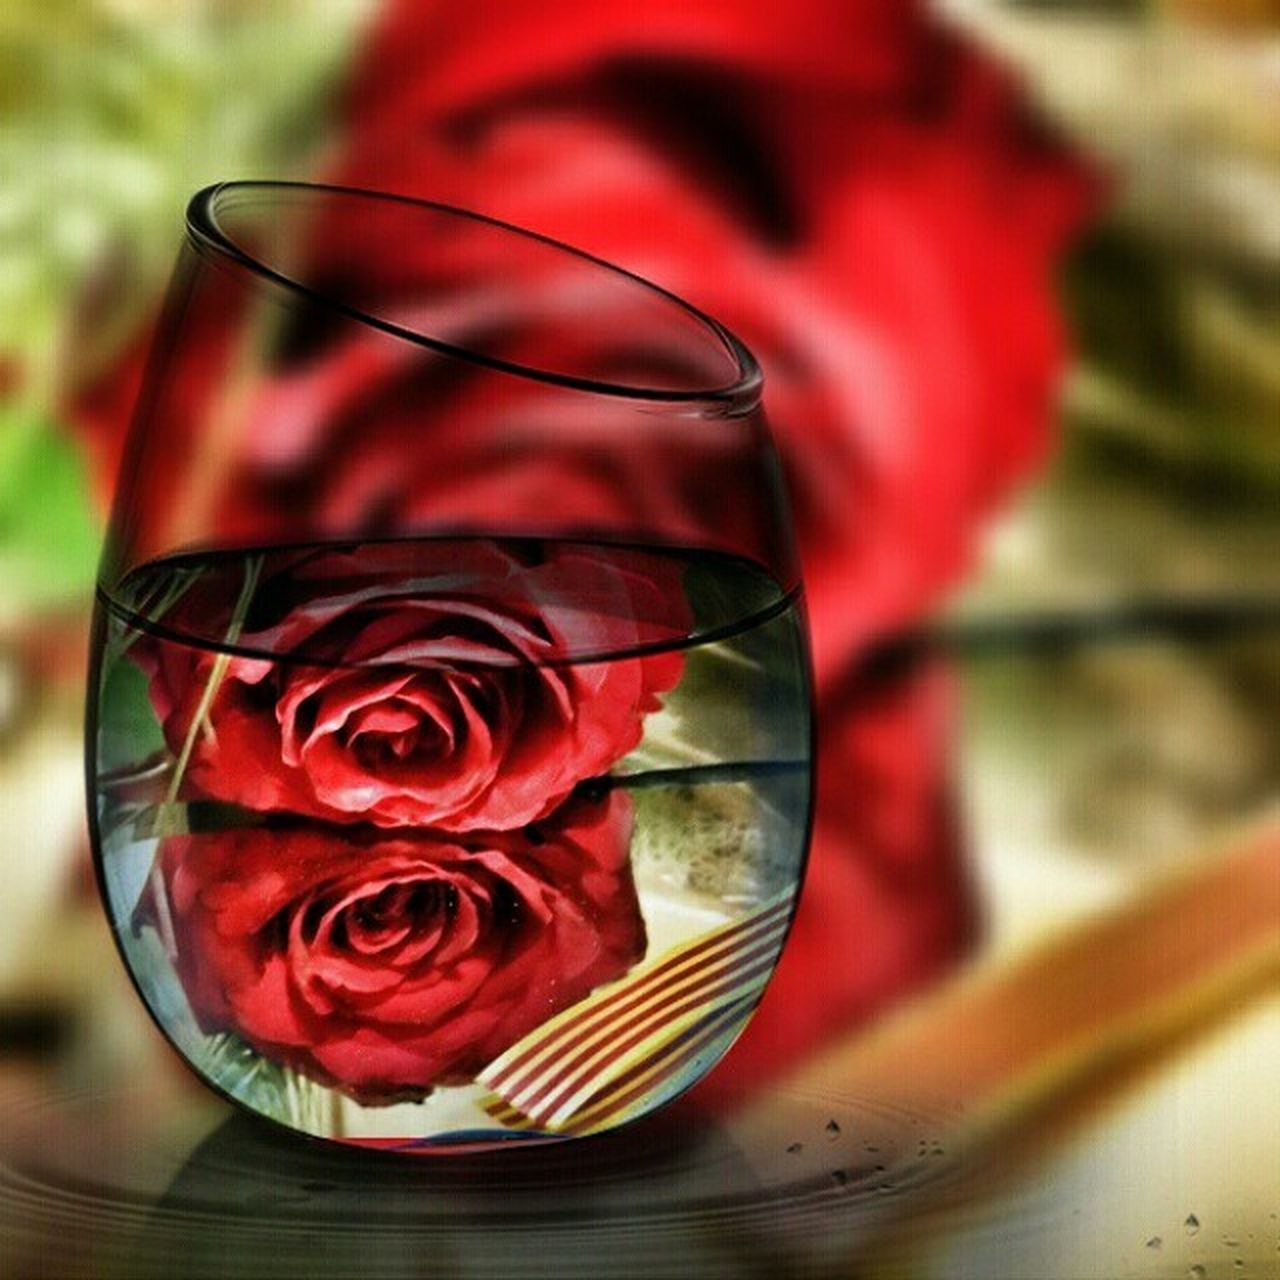 flower, close-up, wineglass, petal, no people, red, table, wine, drink, drinking glass, rose - flower, alcohol, fragility, flower head, indoors, nature, freshness, day, water, beauty in nature